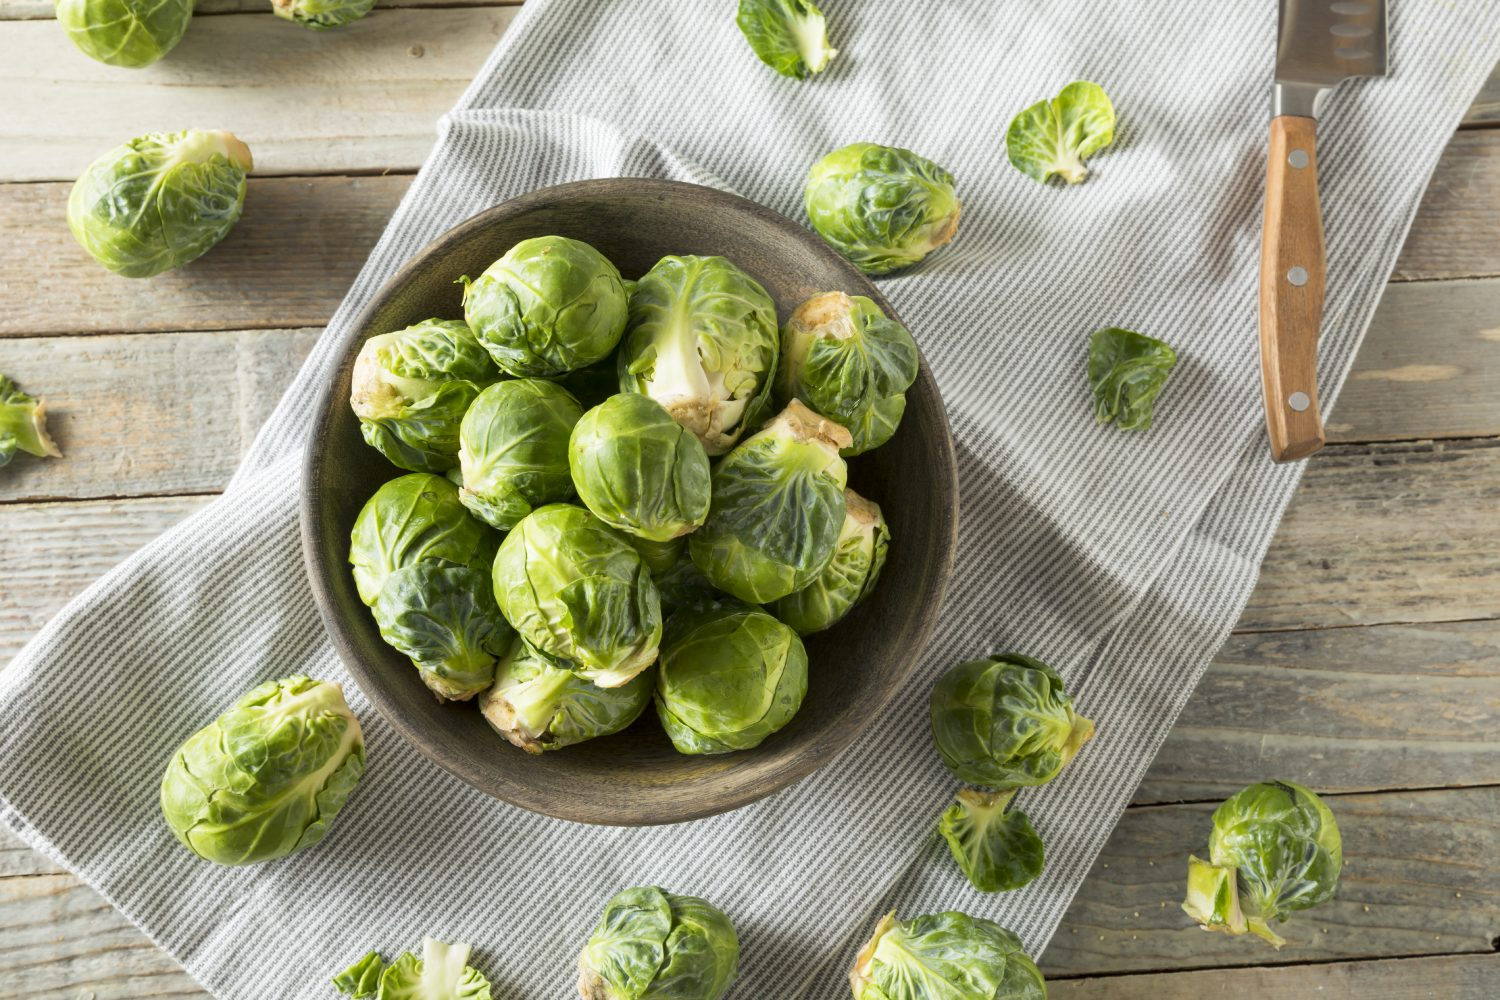 Raw Organic Green Brussel Sprouts Ready to Cook